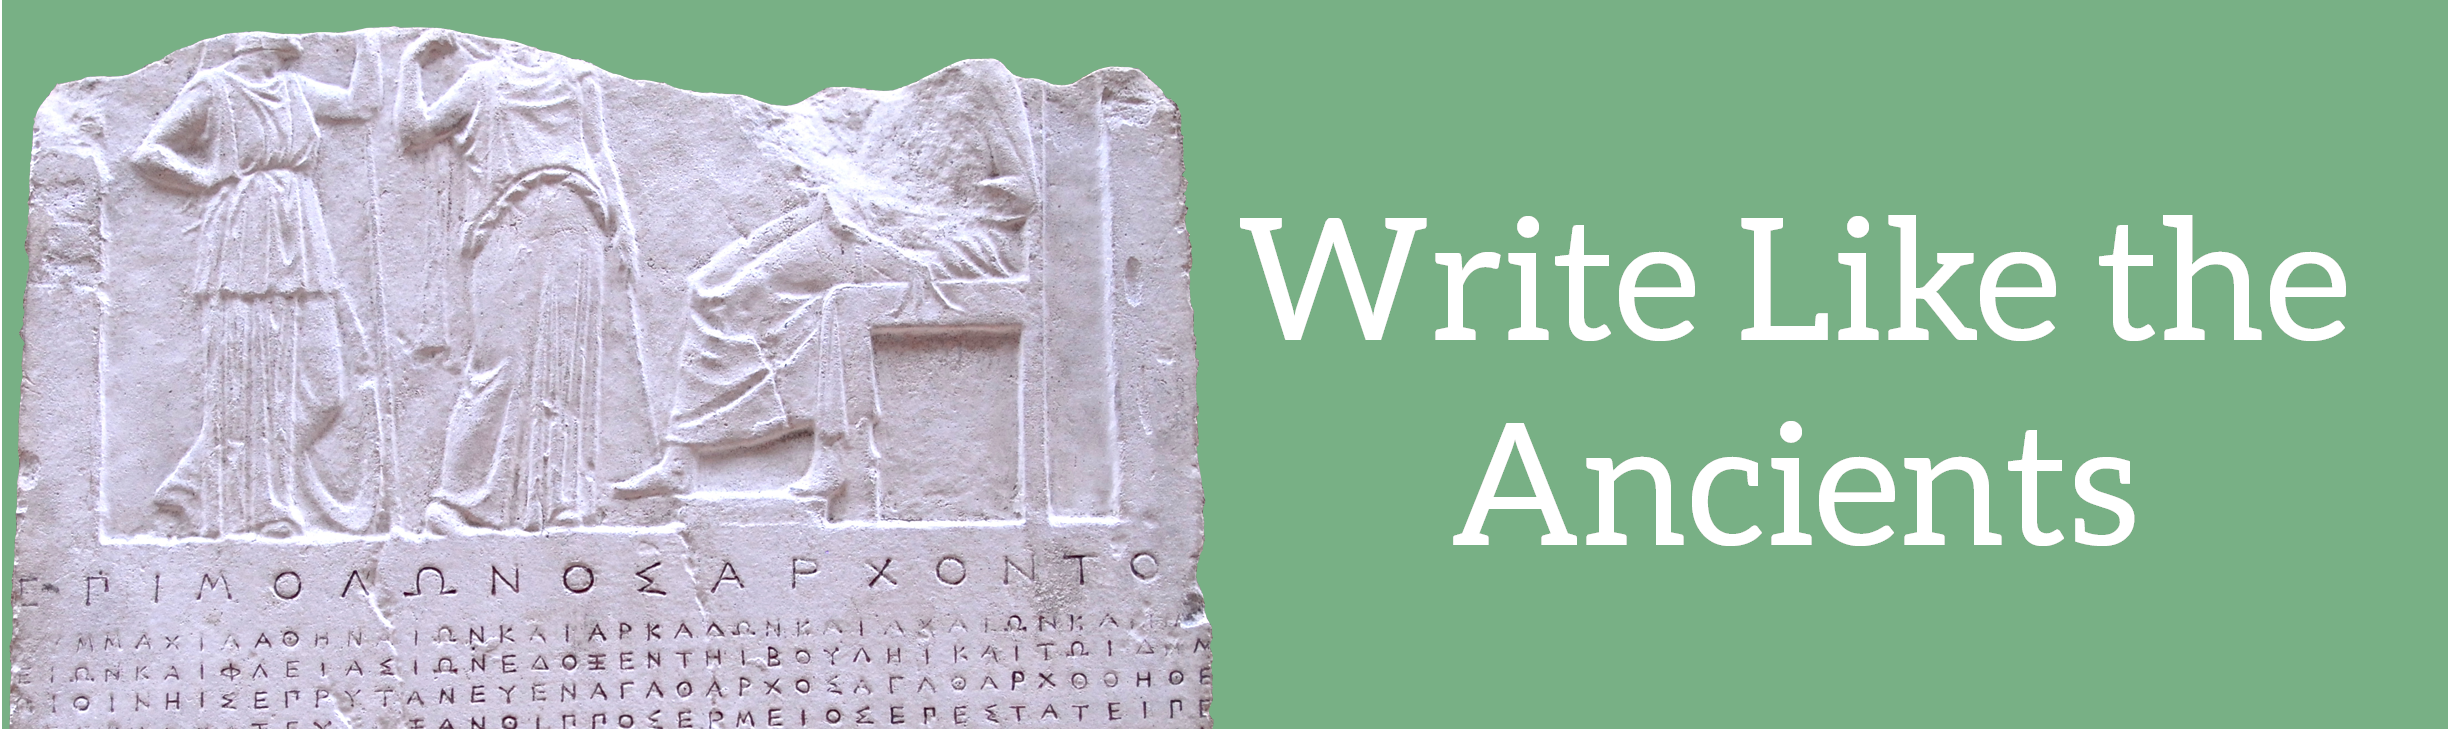 Write like the Ancients